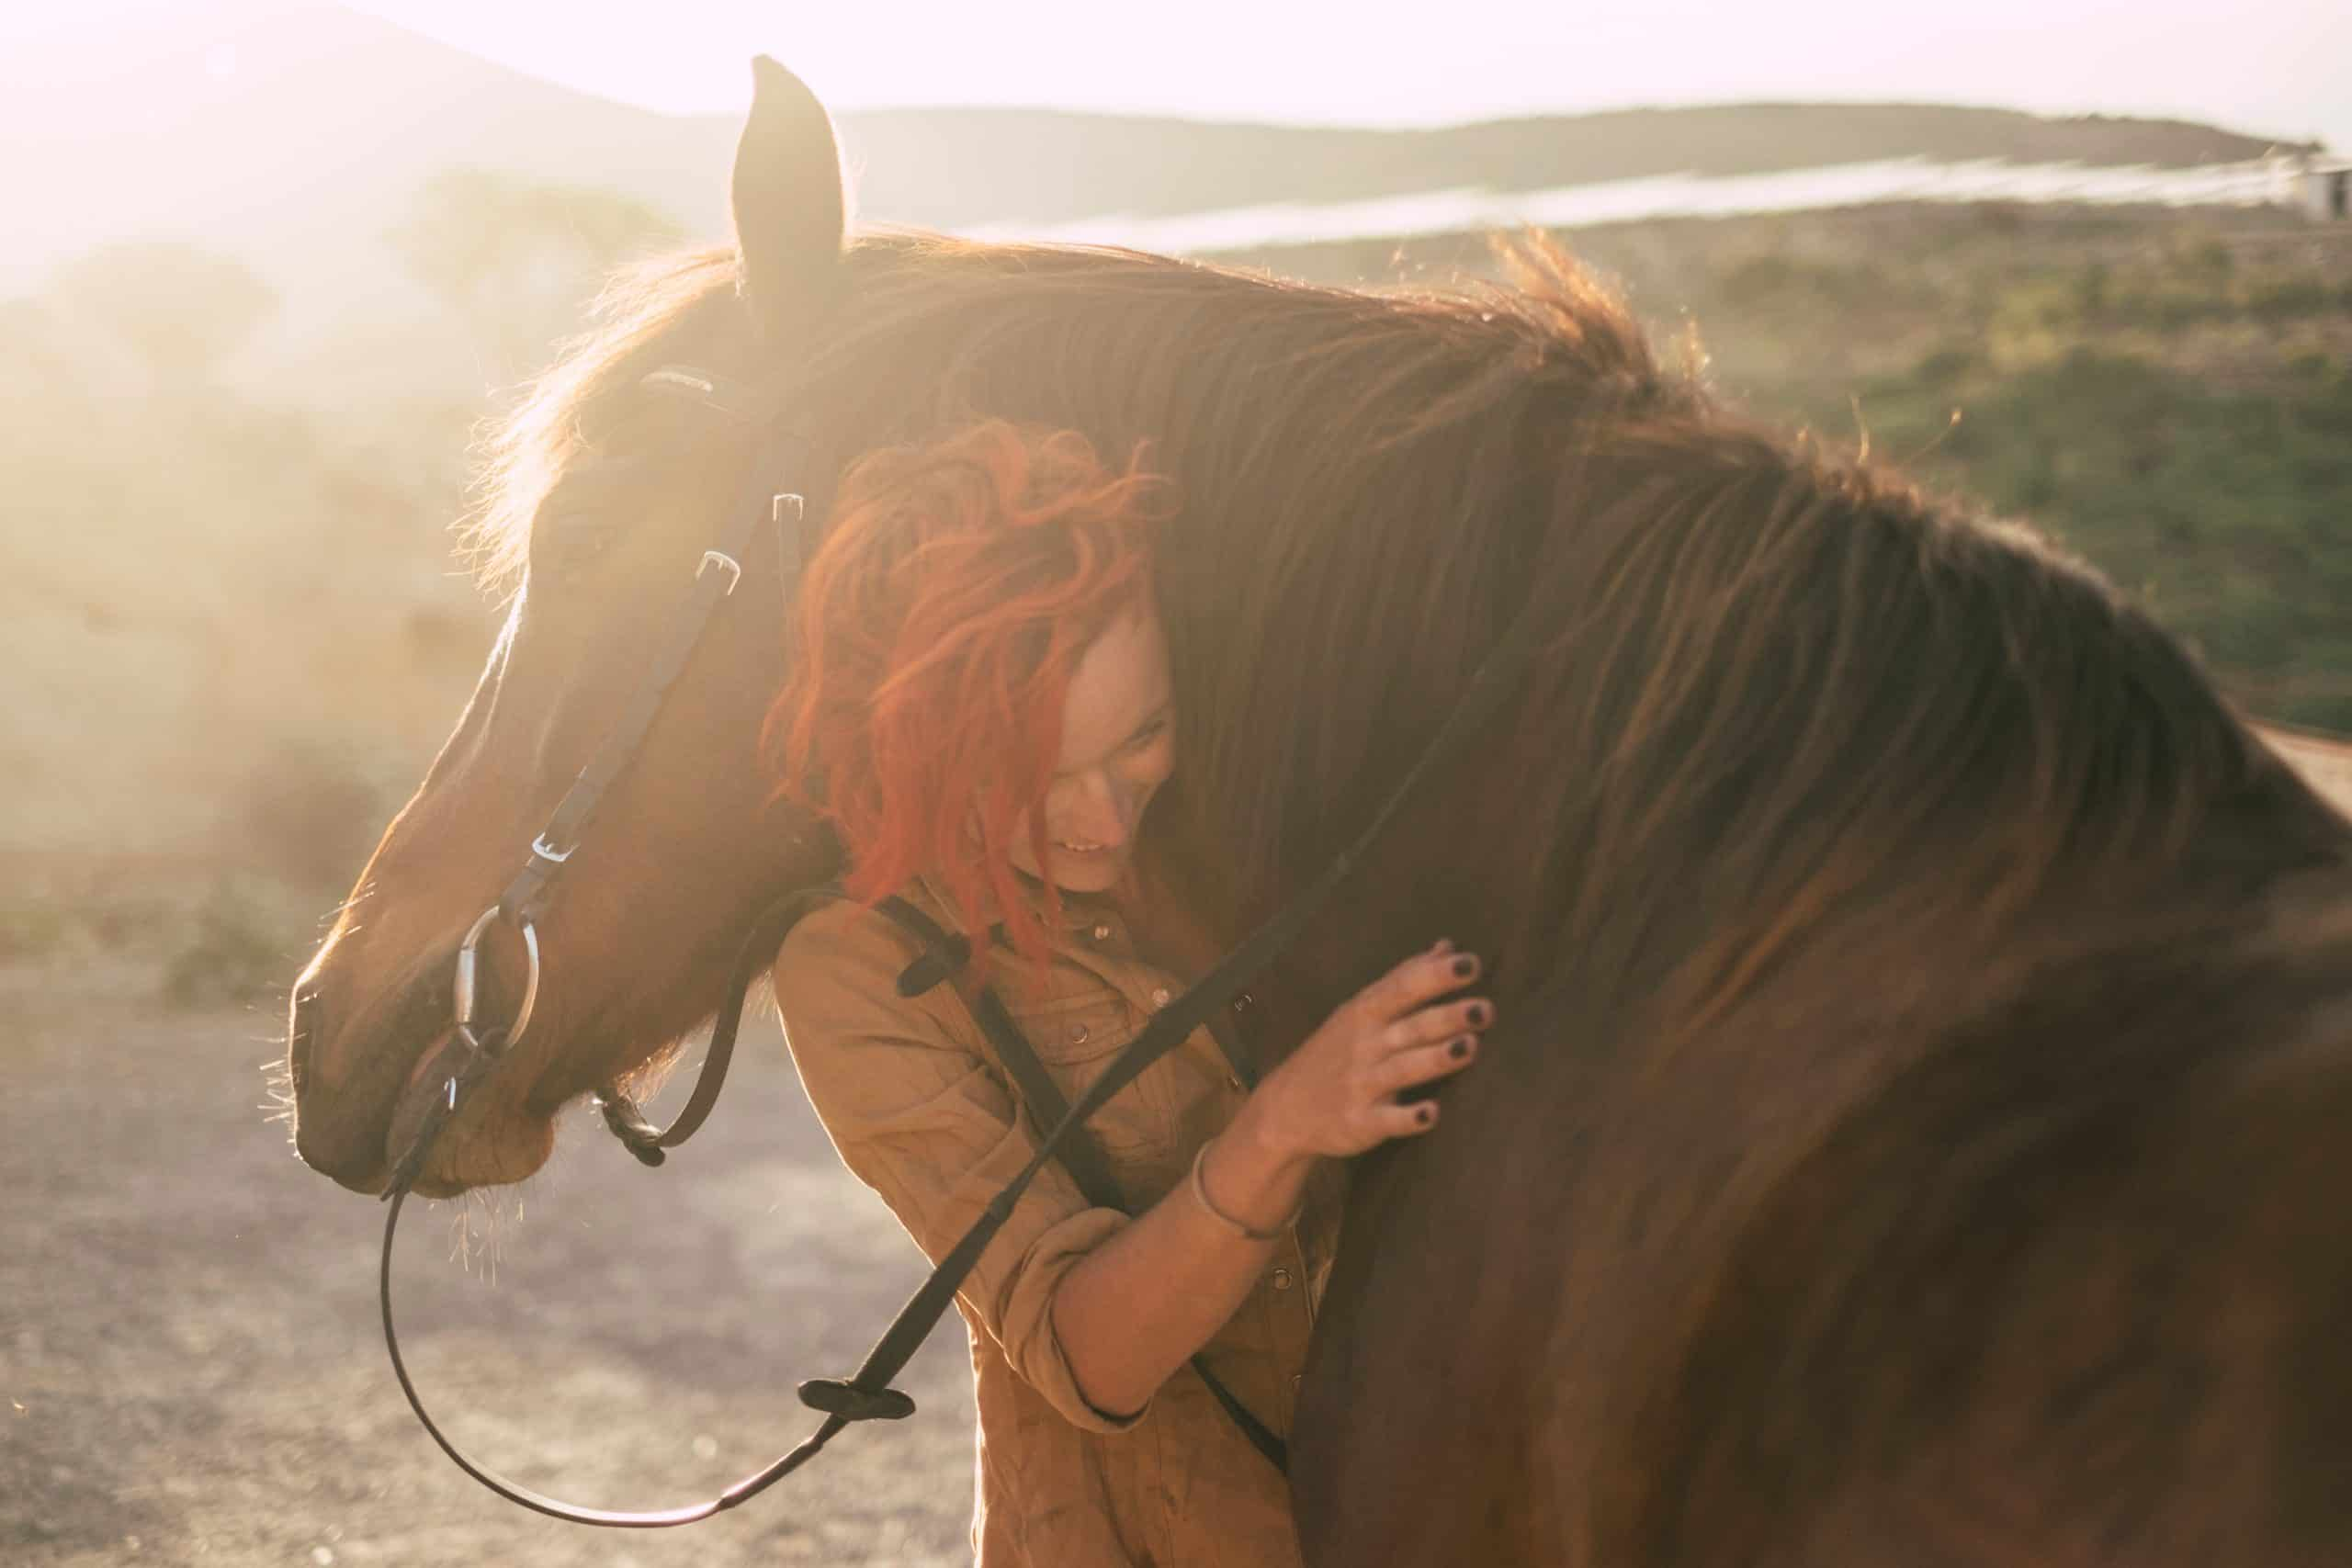 red hair beautiful caucasian woman hug with love his best friends horse under the sunset outdoor in backlight. friendship and relationship animals therapy concept and alternative lifestyle